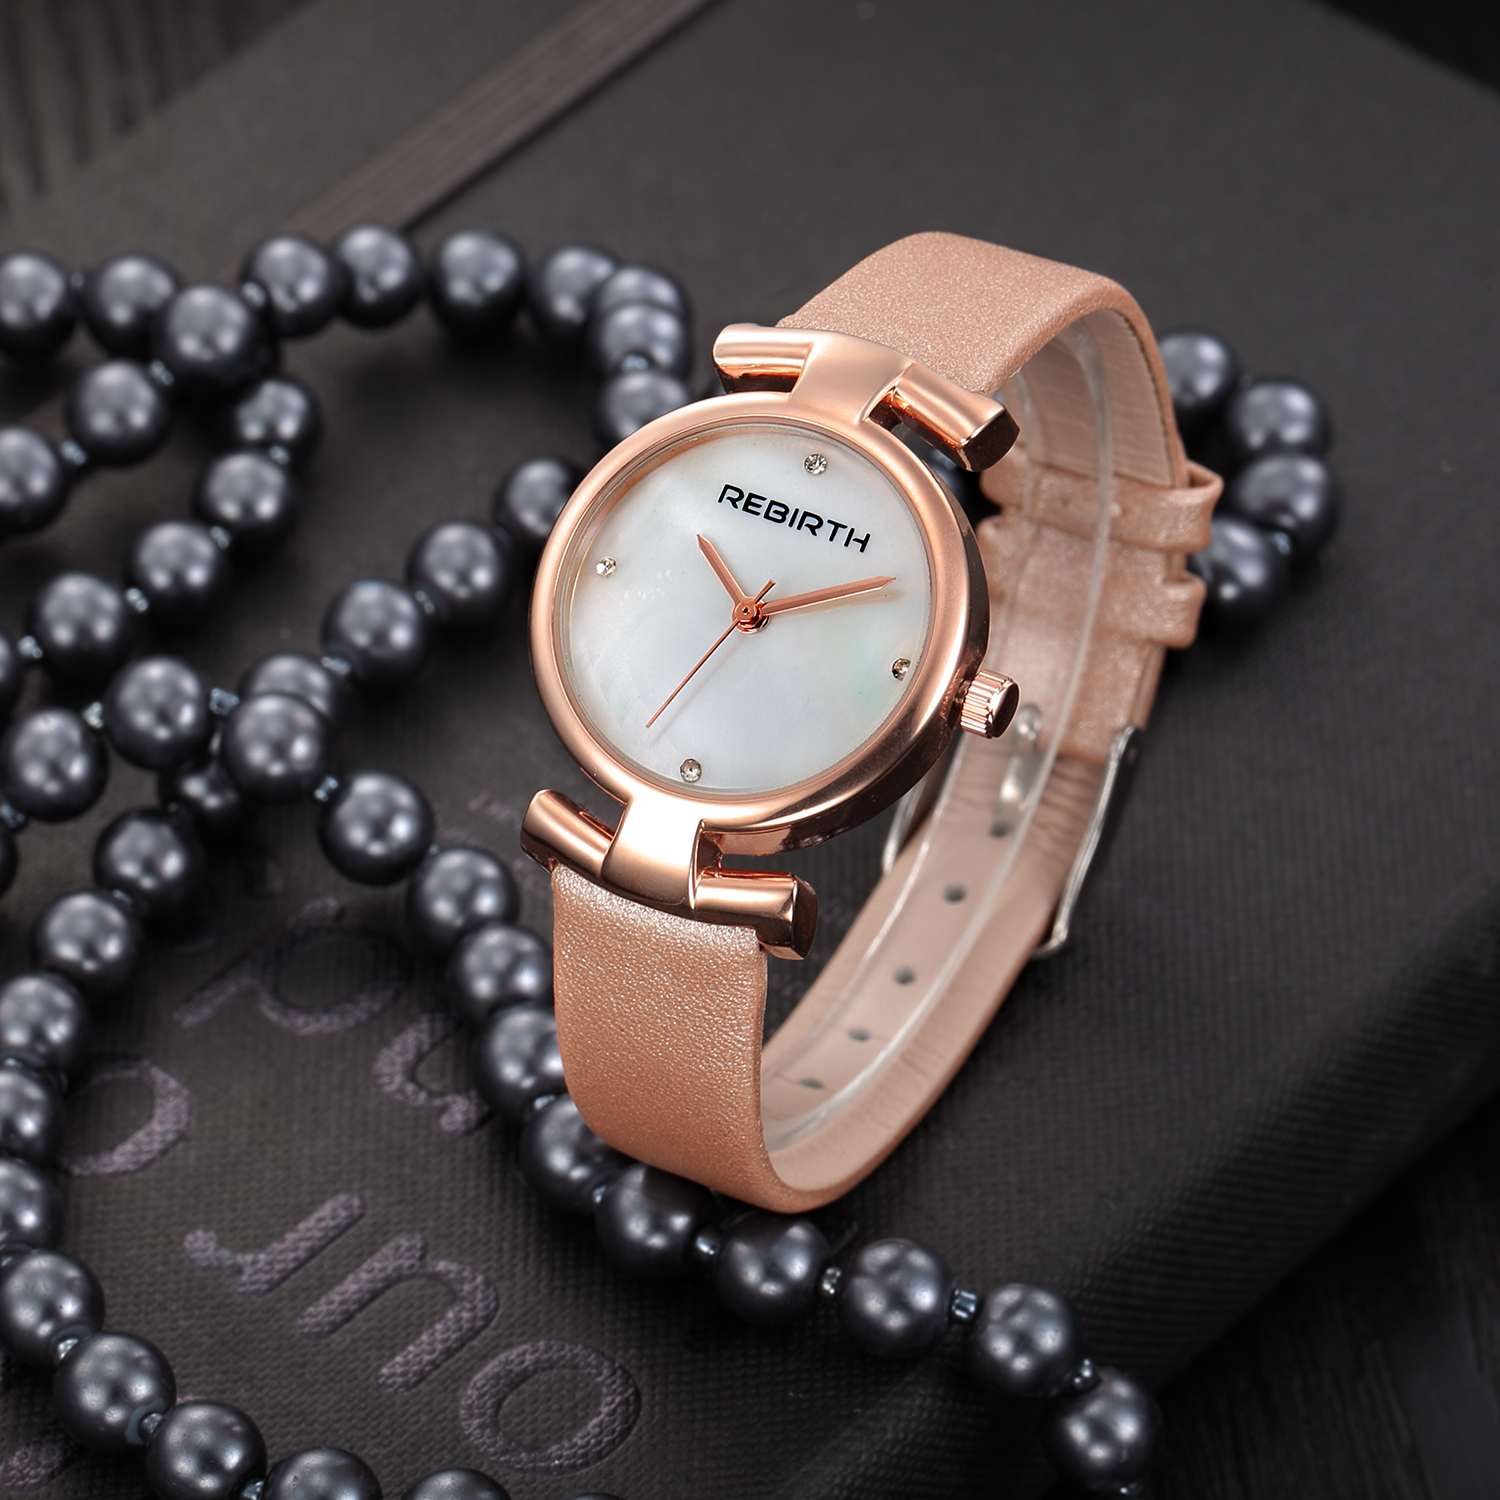 2017 Fashion Women Watch Top Brand Lady Dress Watches Simple Female Quartz Wristwatch Leather Strap Girl Clock Relogio Feminino swiss fashion brand agelocer dress gold quartz watch women clock female lady leather strap wristwatch relogio feminino luxury